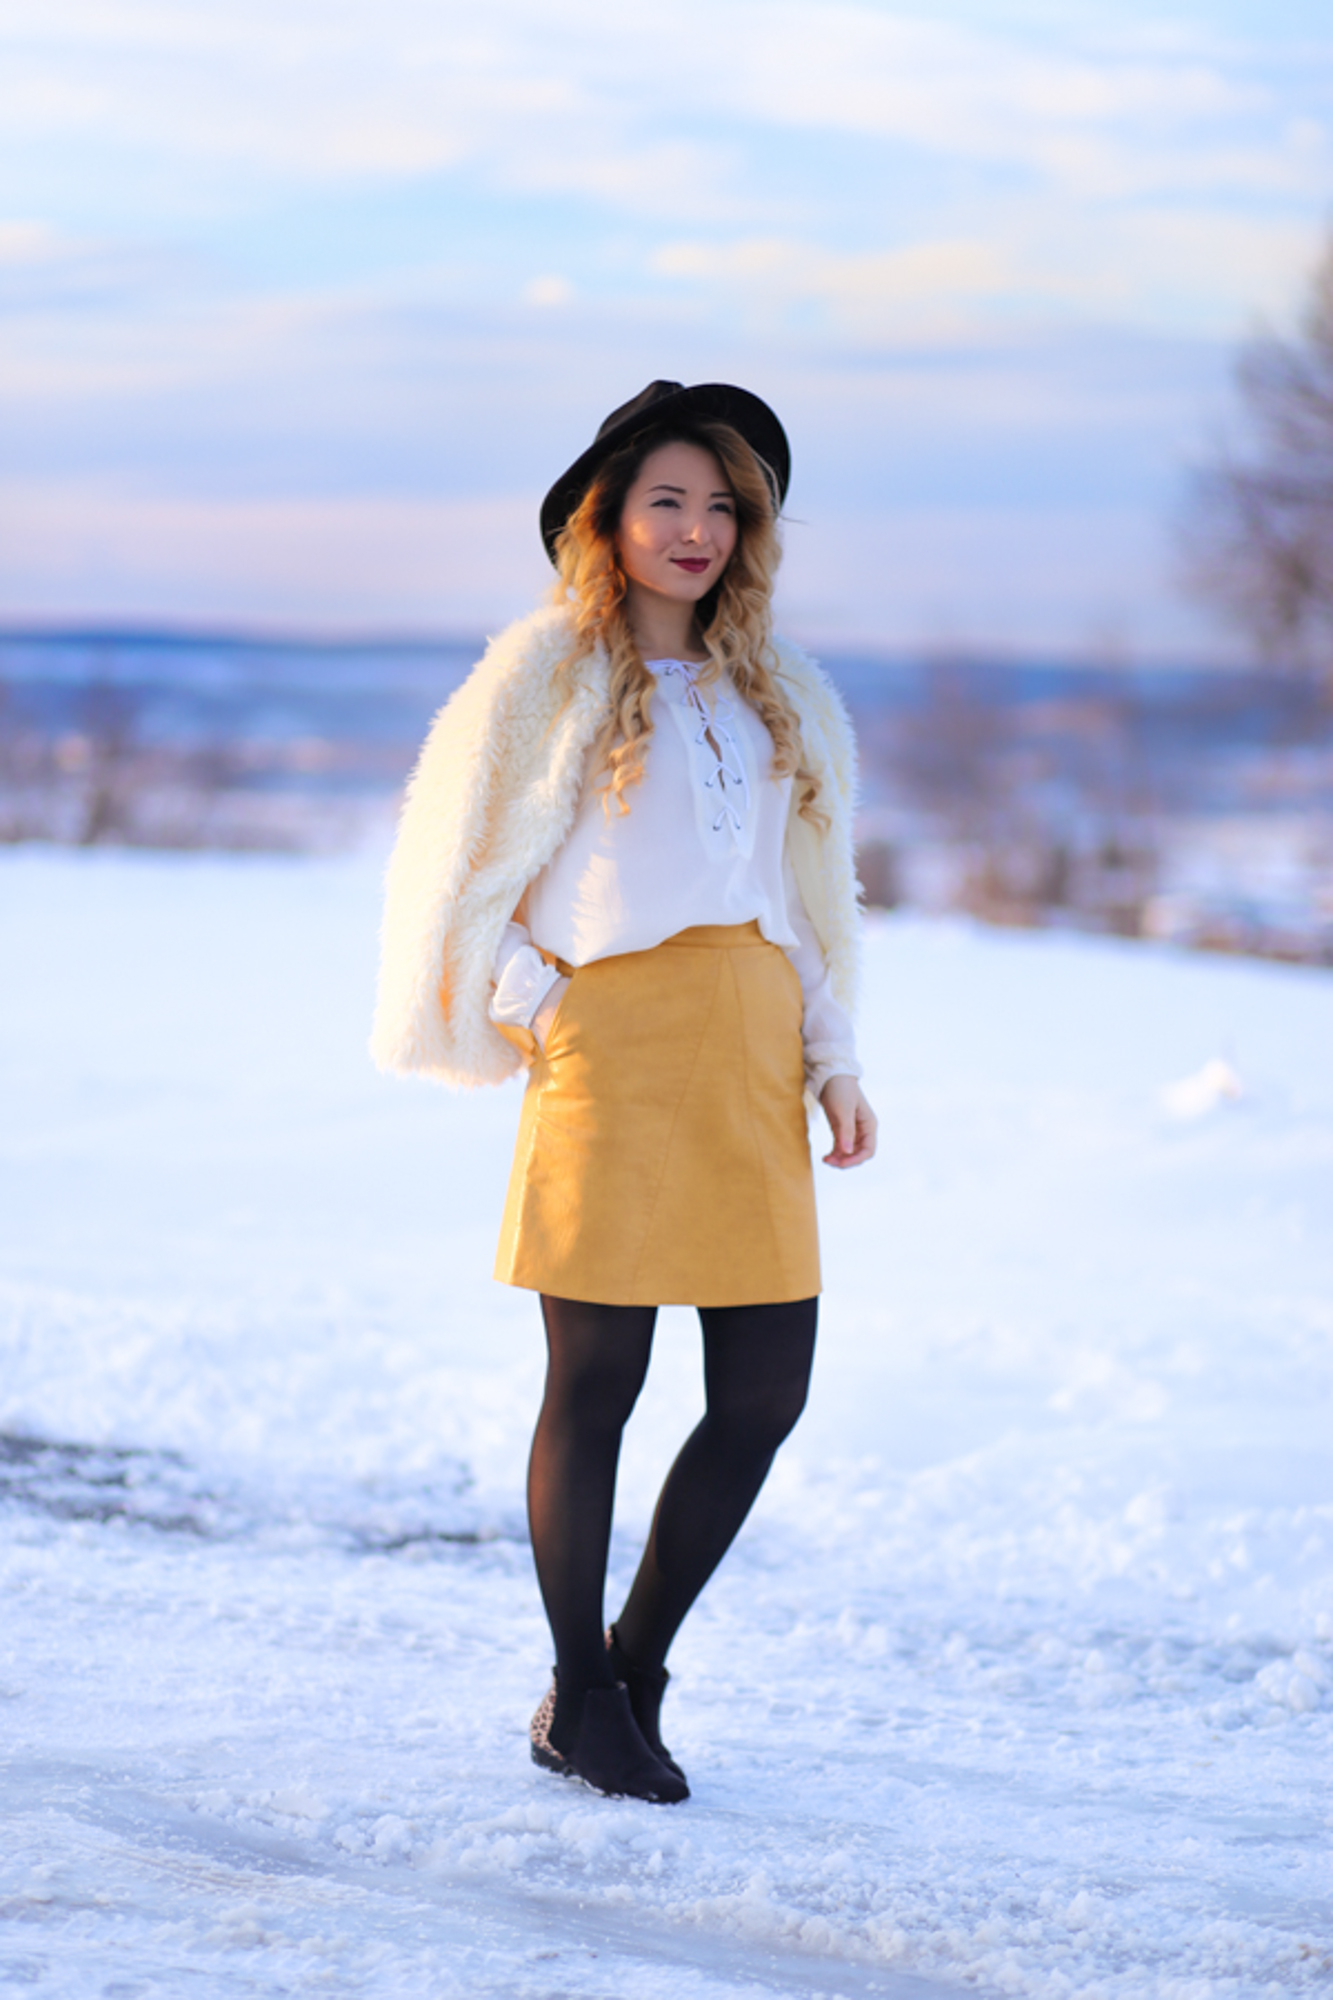 Street style: yellow a line skirt, white shirt, winter look, outfit, fluffy white coat, black hat